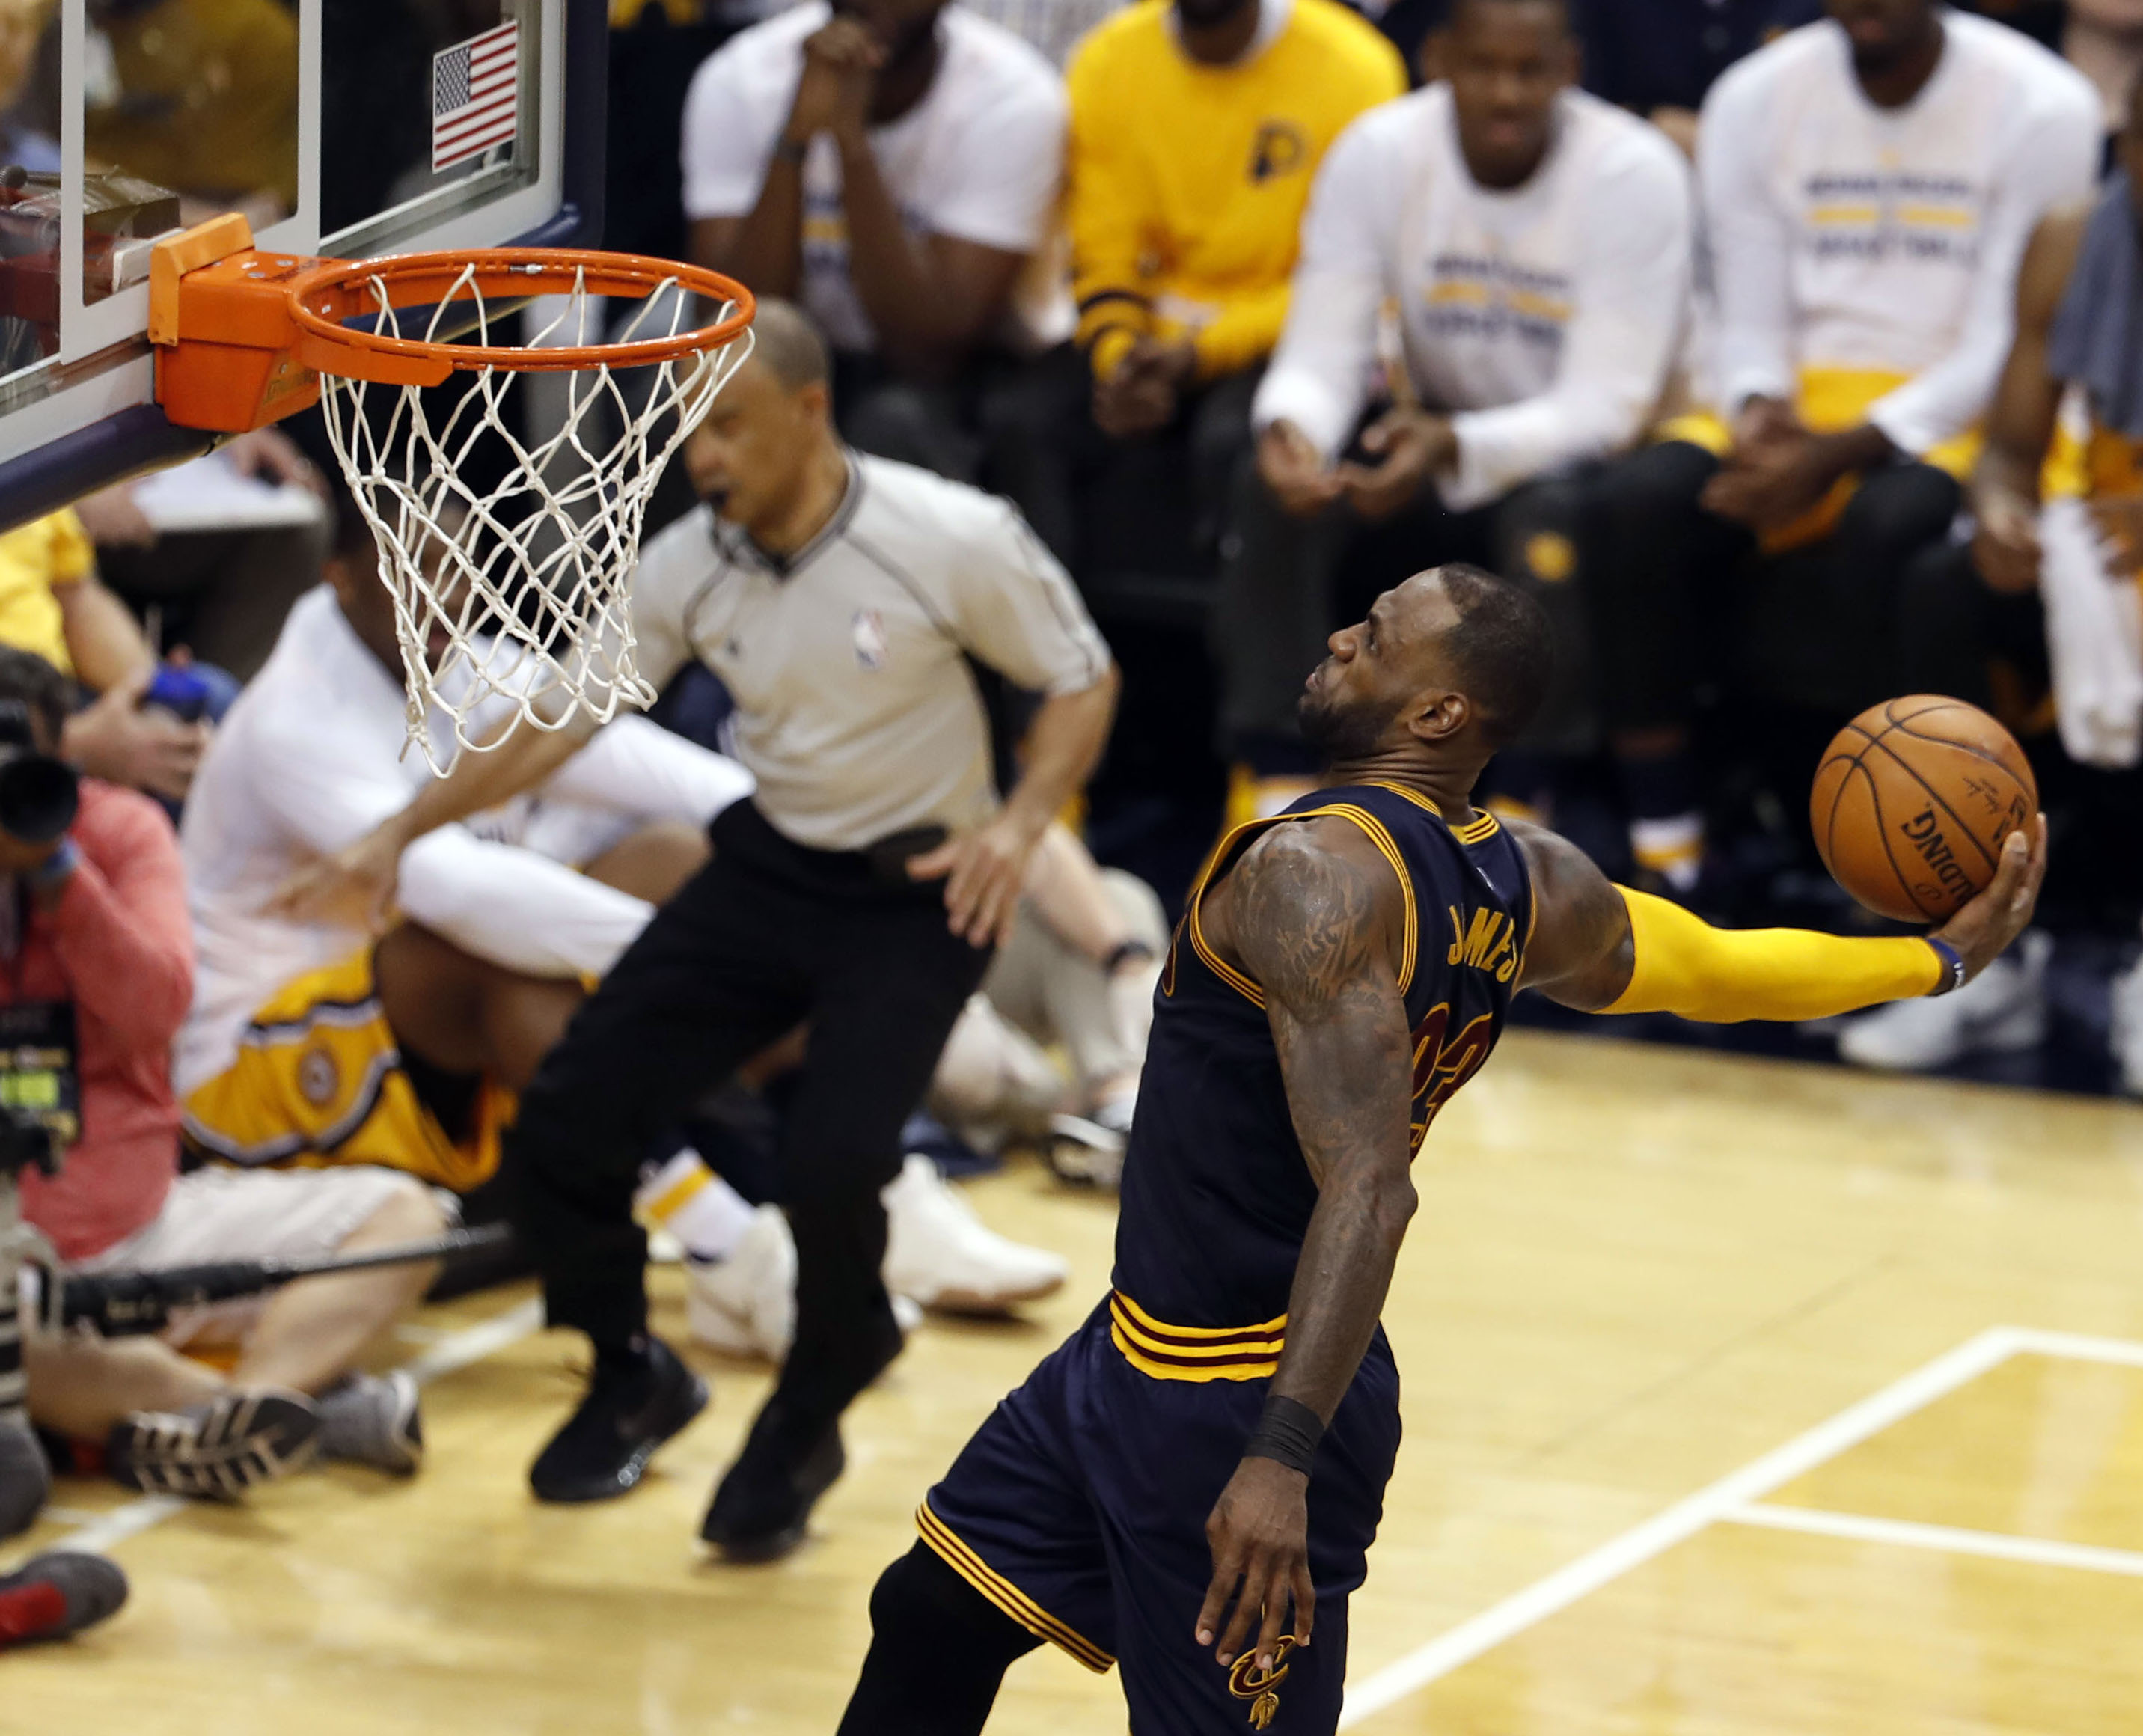 10022686-nba-playoffs-cleveland-cavaliers-at-indiana-pacers-2